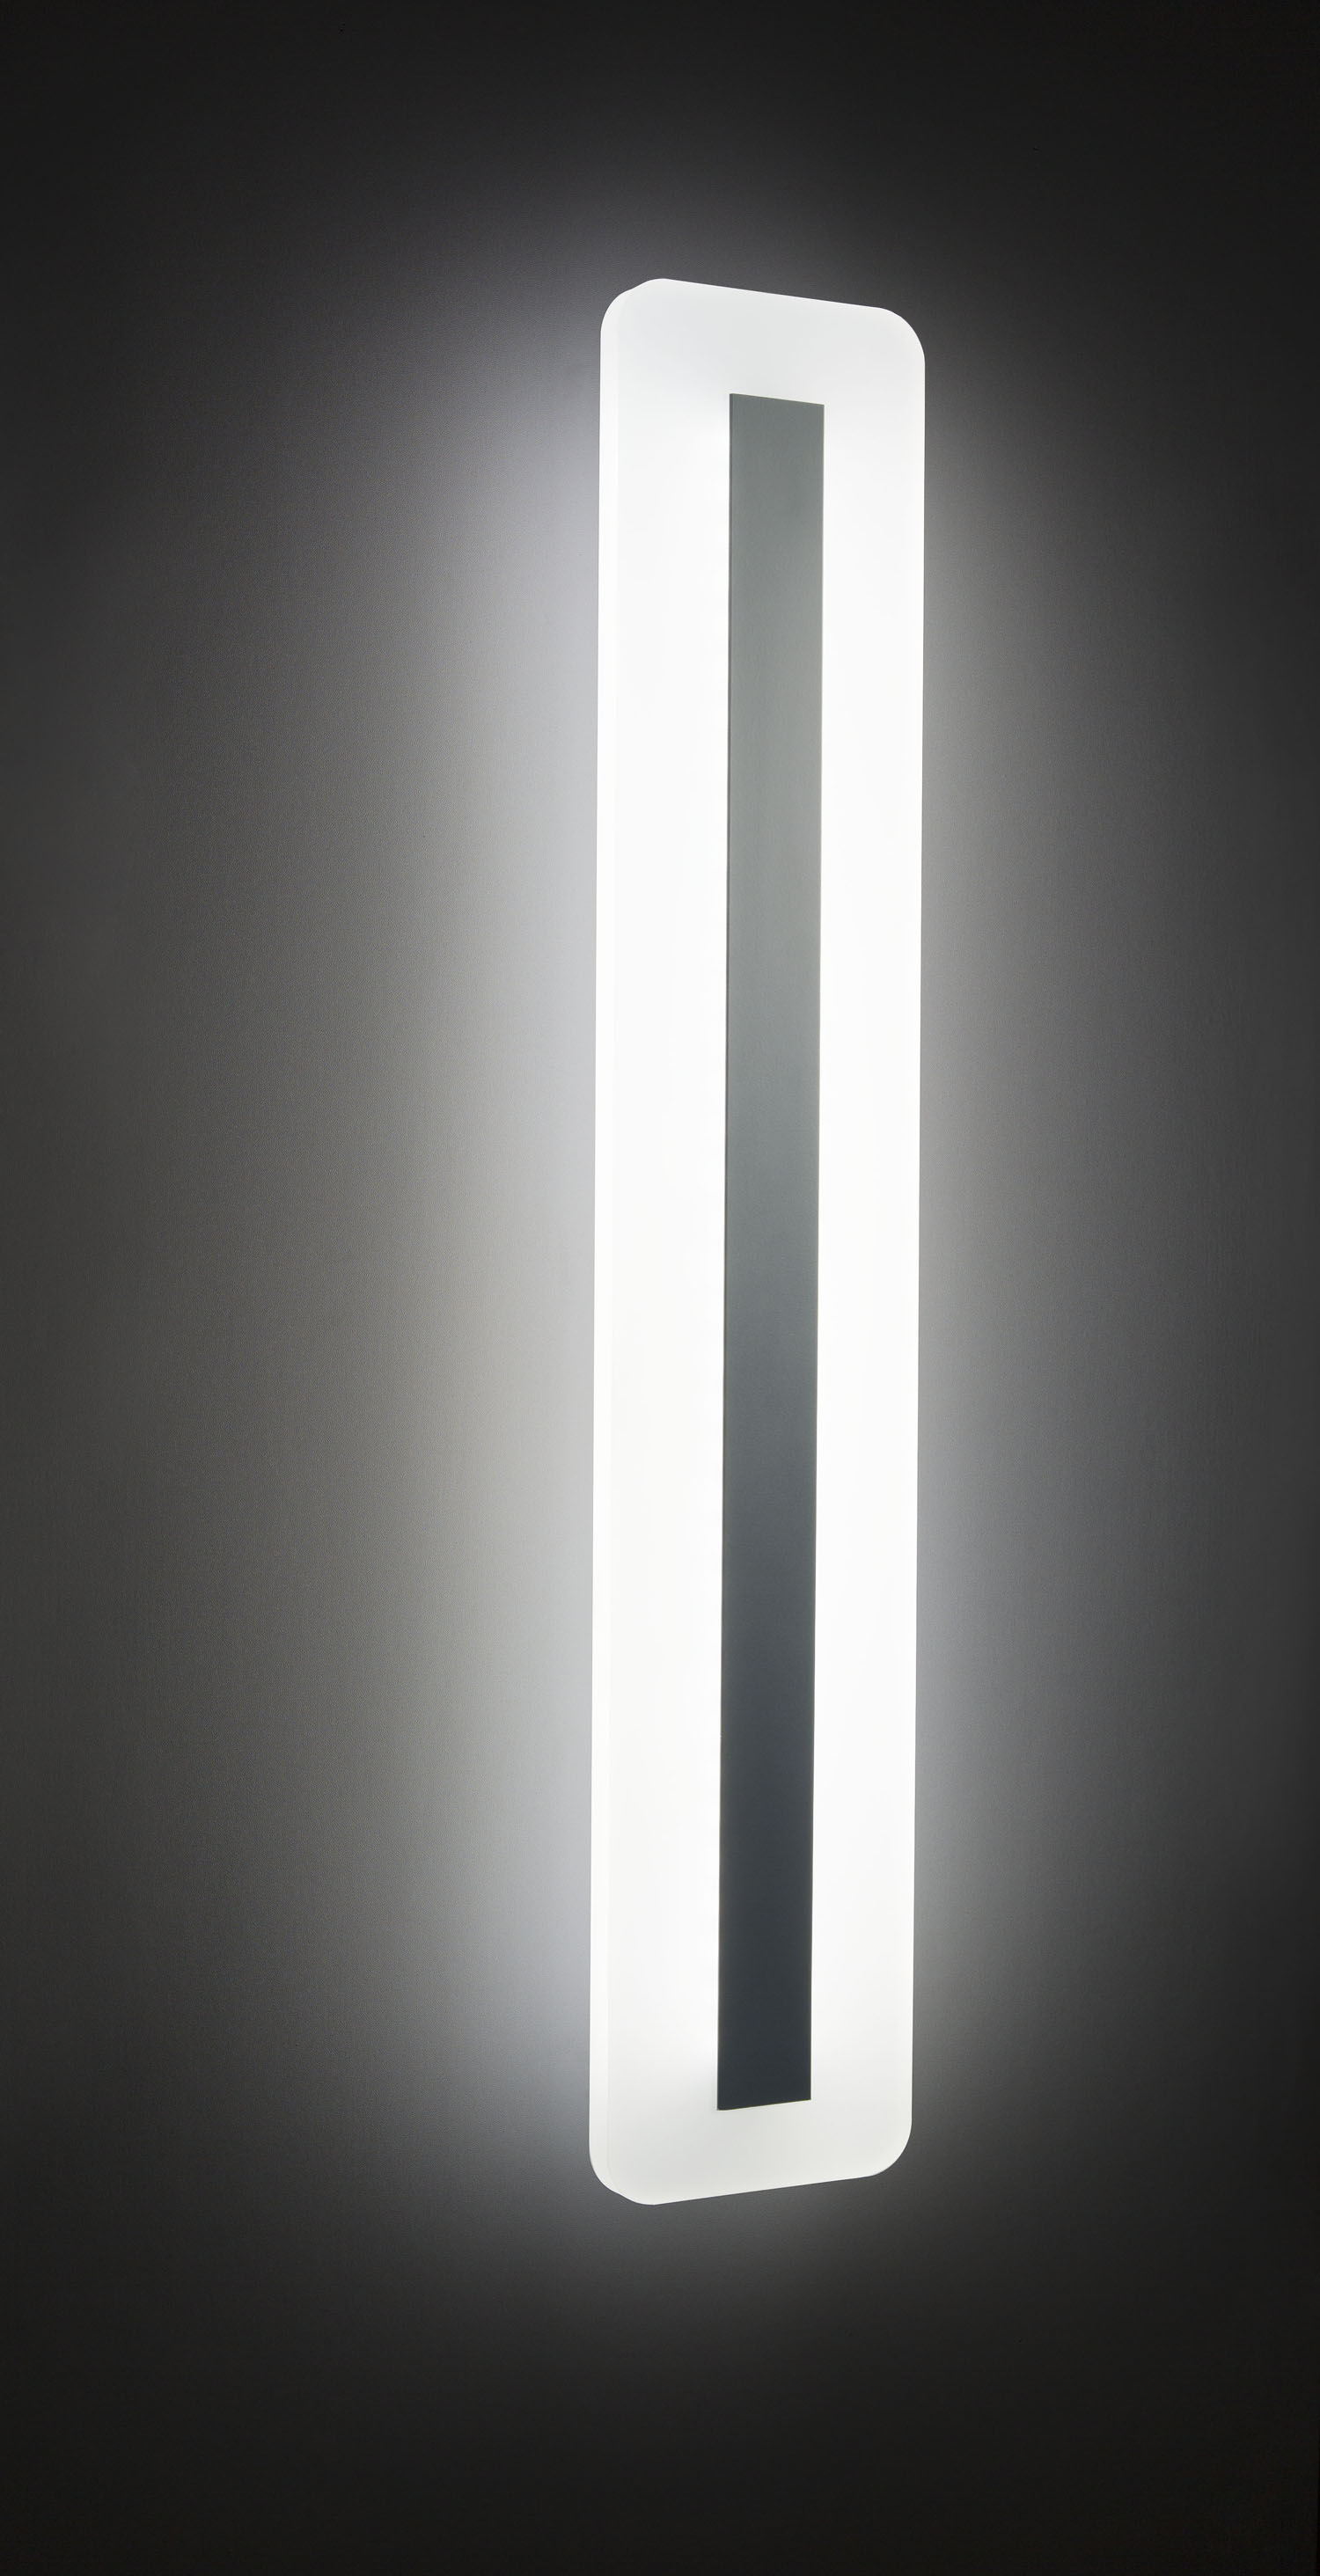 LED-069-WALL  LED wall lamp for residential, corridors and architectural use.High lumen, strobeless,glare free